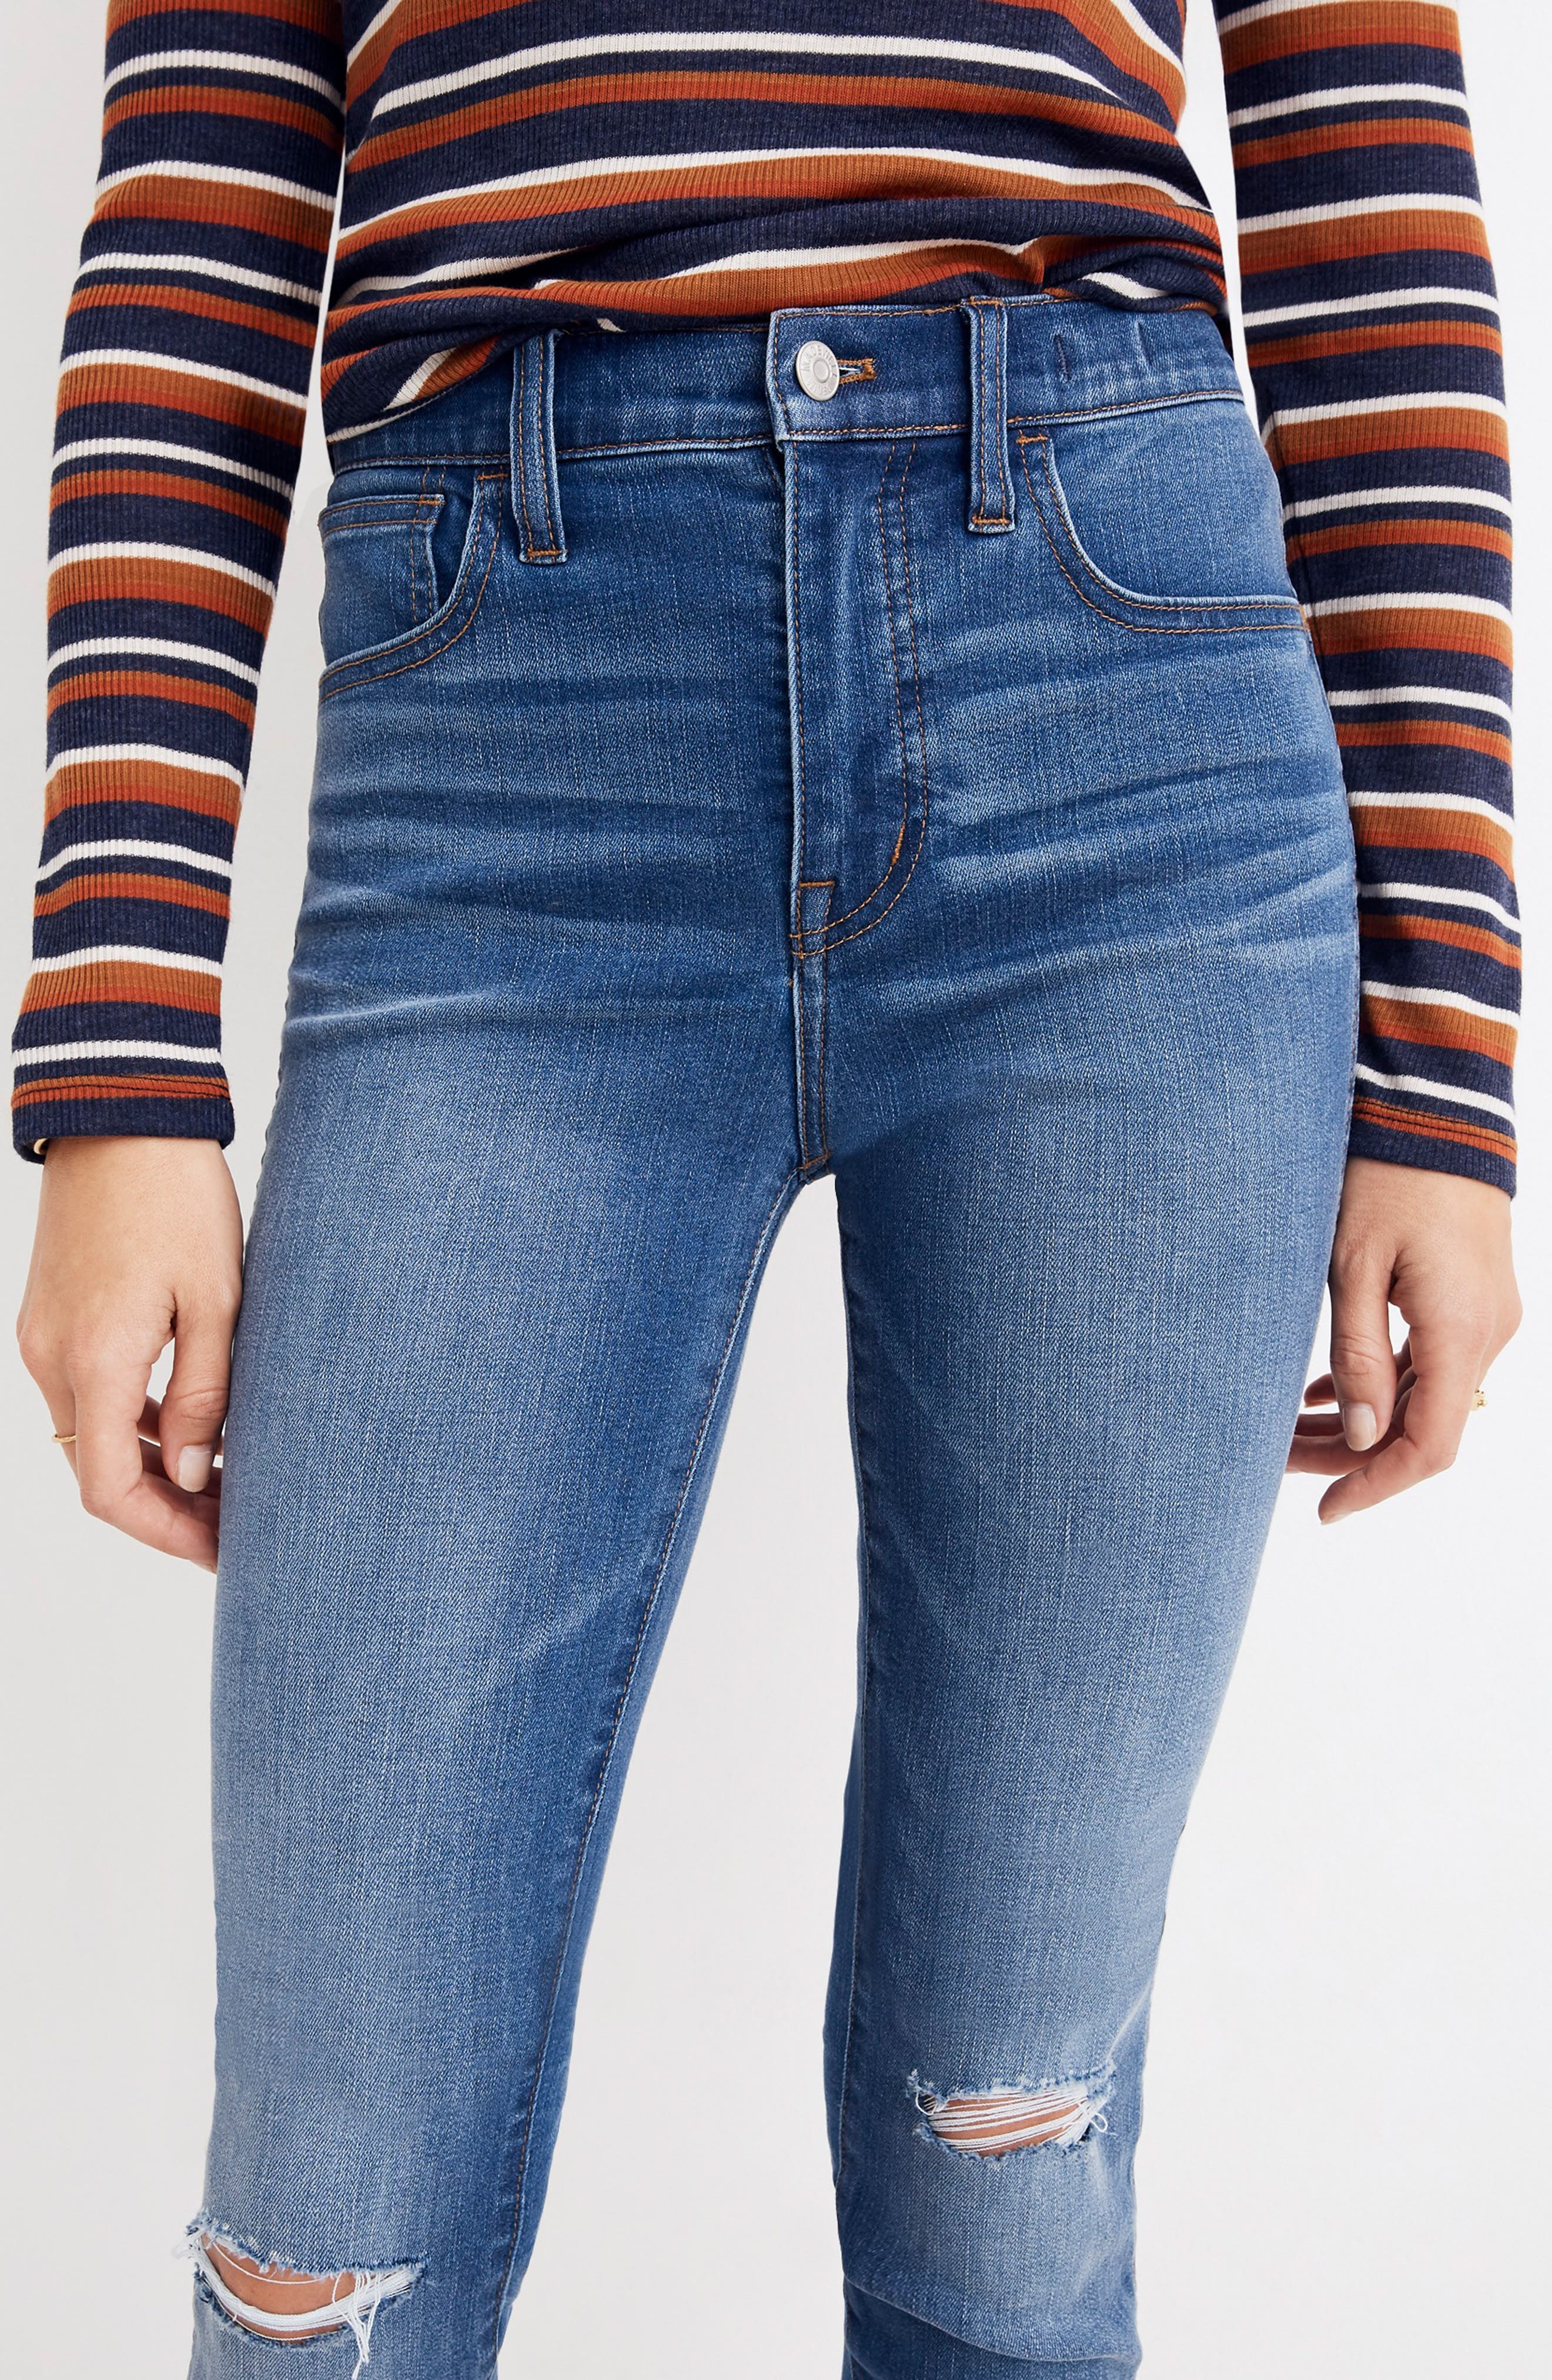 MADEWELL, Roadtripper Ripped High Waist Ankle Skinny Jeans, Alternate thumbnail 5, color, THE ROAD TRIPPER W/ SLIT KNEES